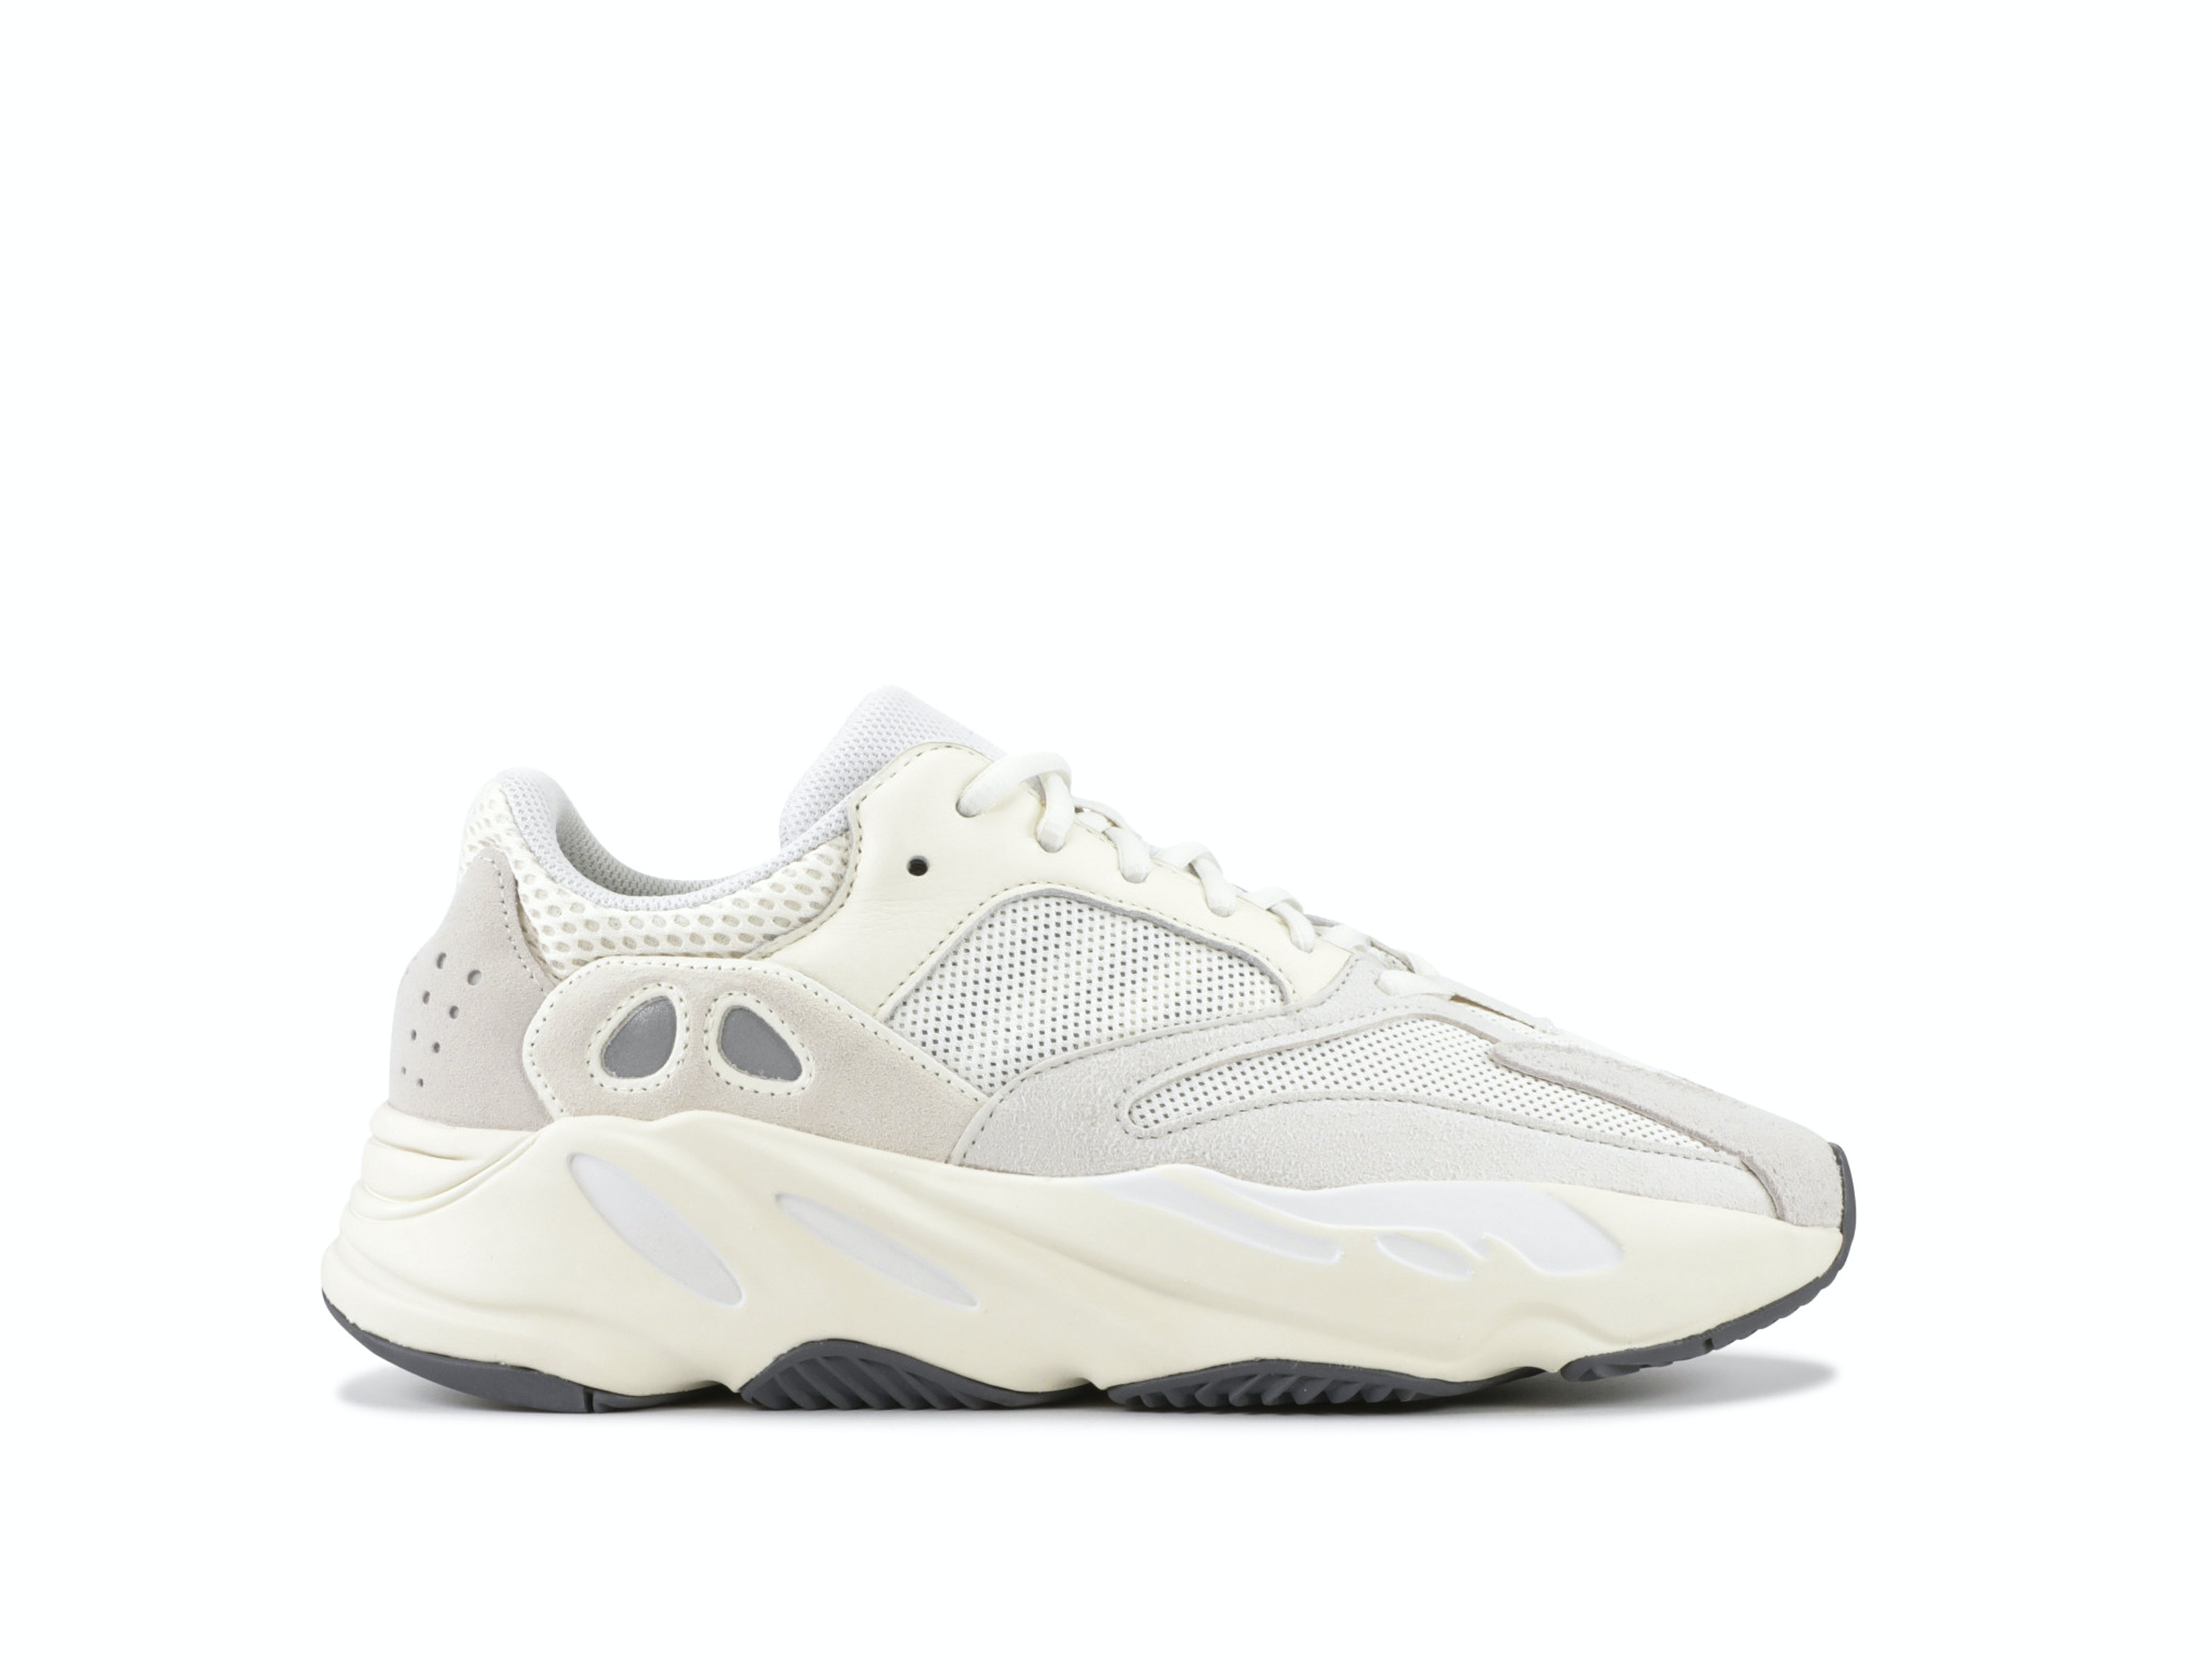 innovative design a88b7 84d83 Yeezy Boost 700 Analog. 100% AuthenticAvg ...